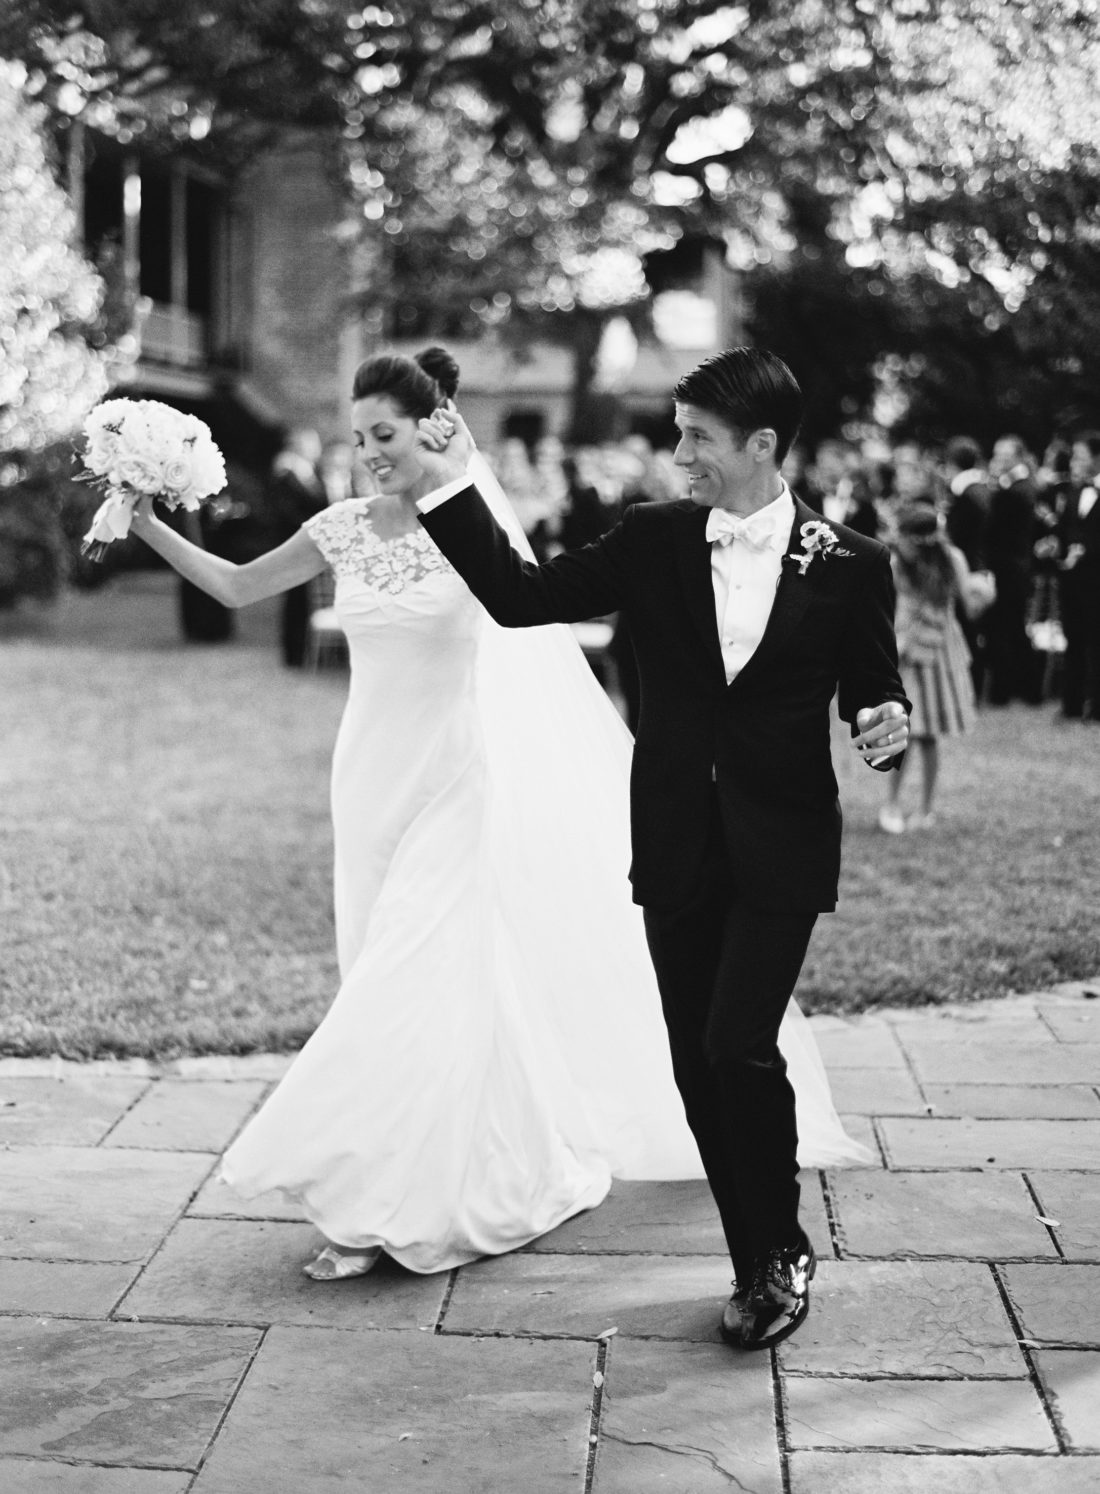 Eva Amurri Martino and Kyle Martino walk through a courtyard after their wedding ceremony in Charleston SC